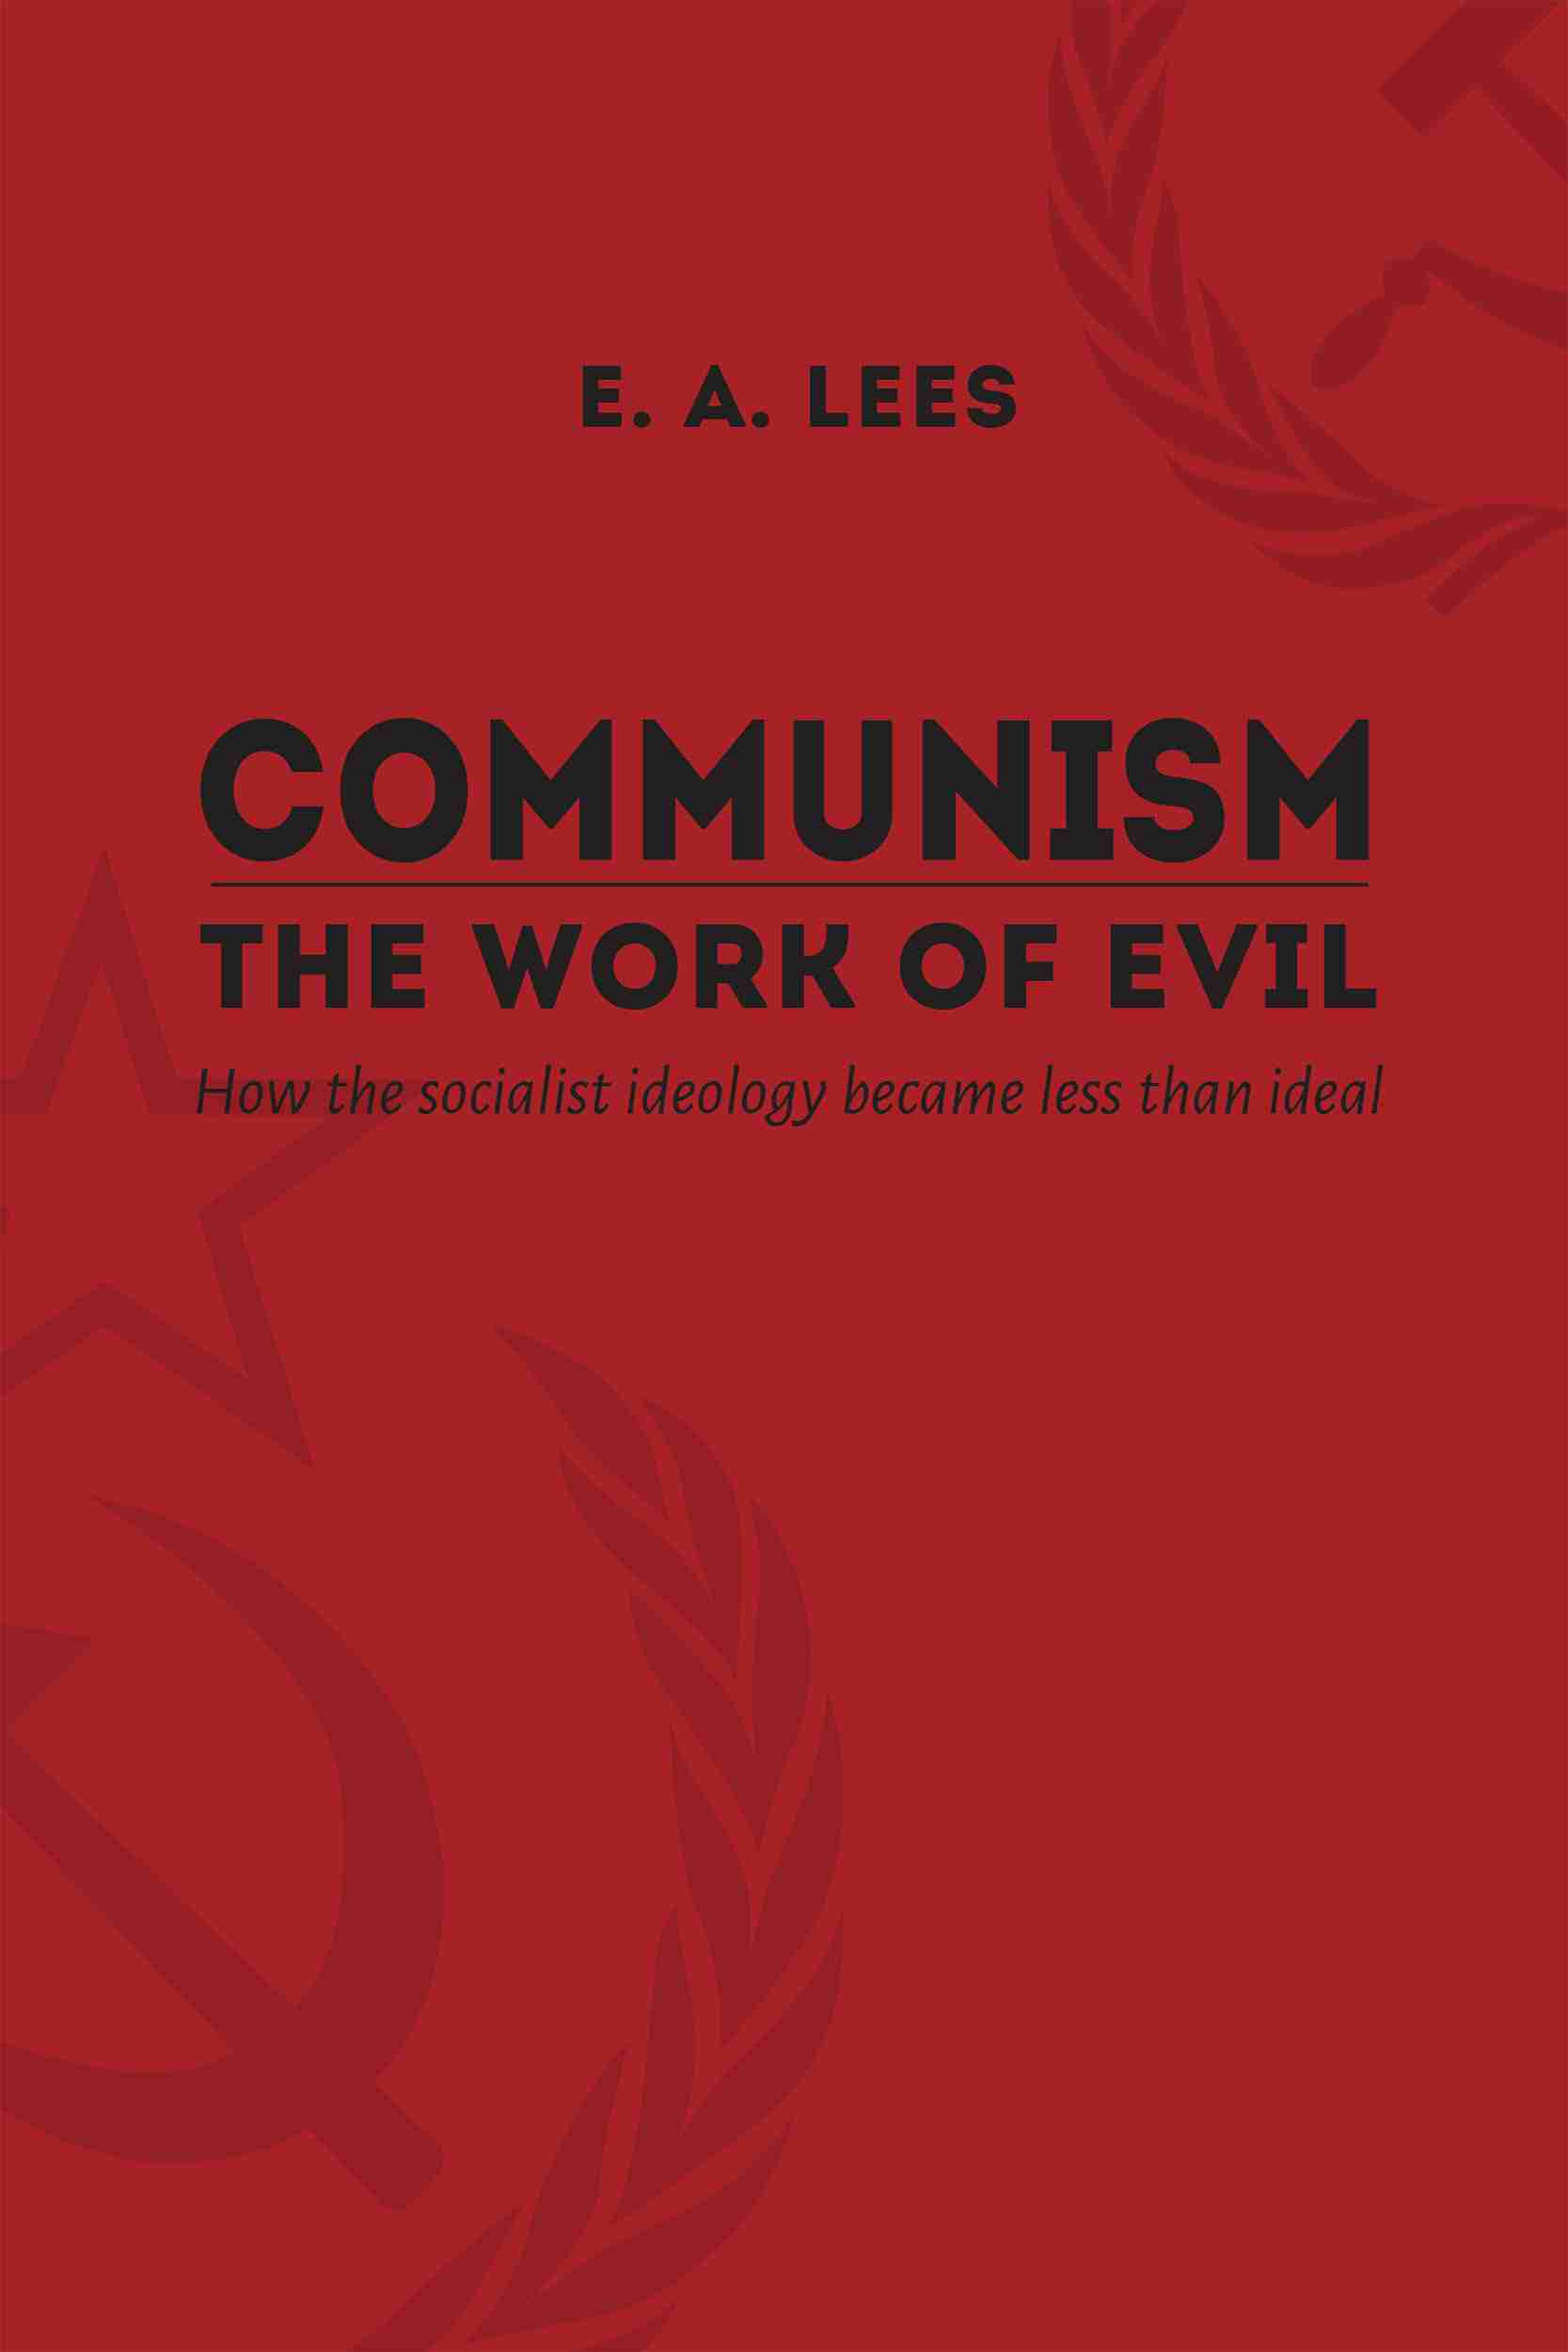 Communism: The Work of Evil by E.A. Lees